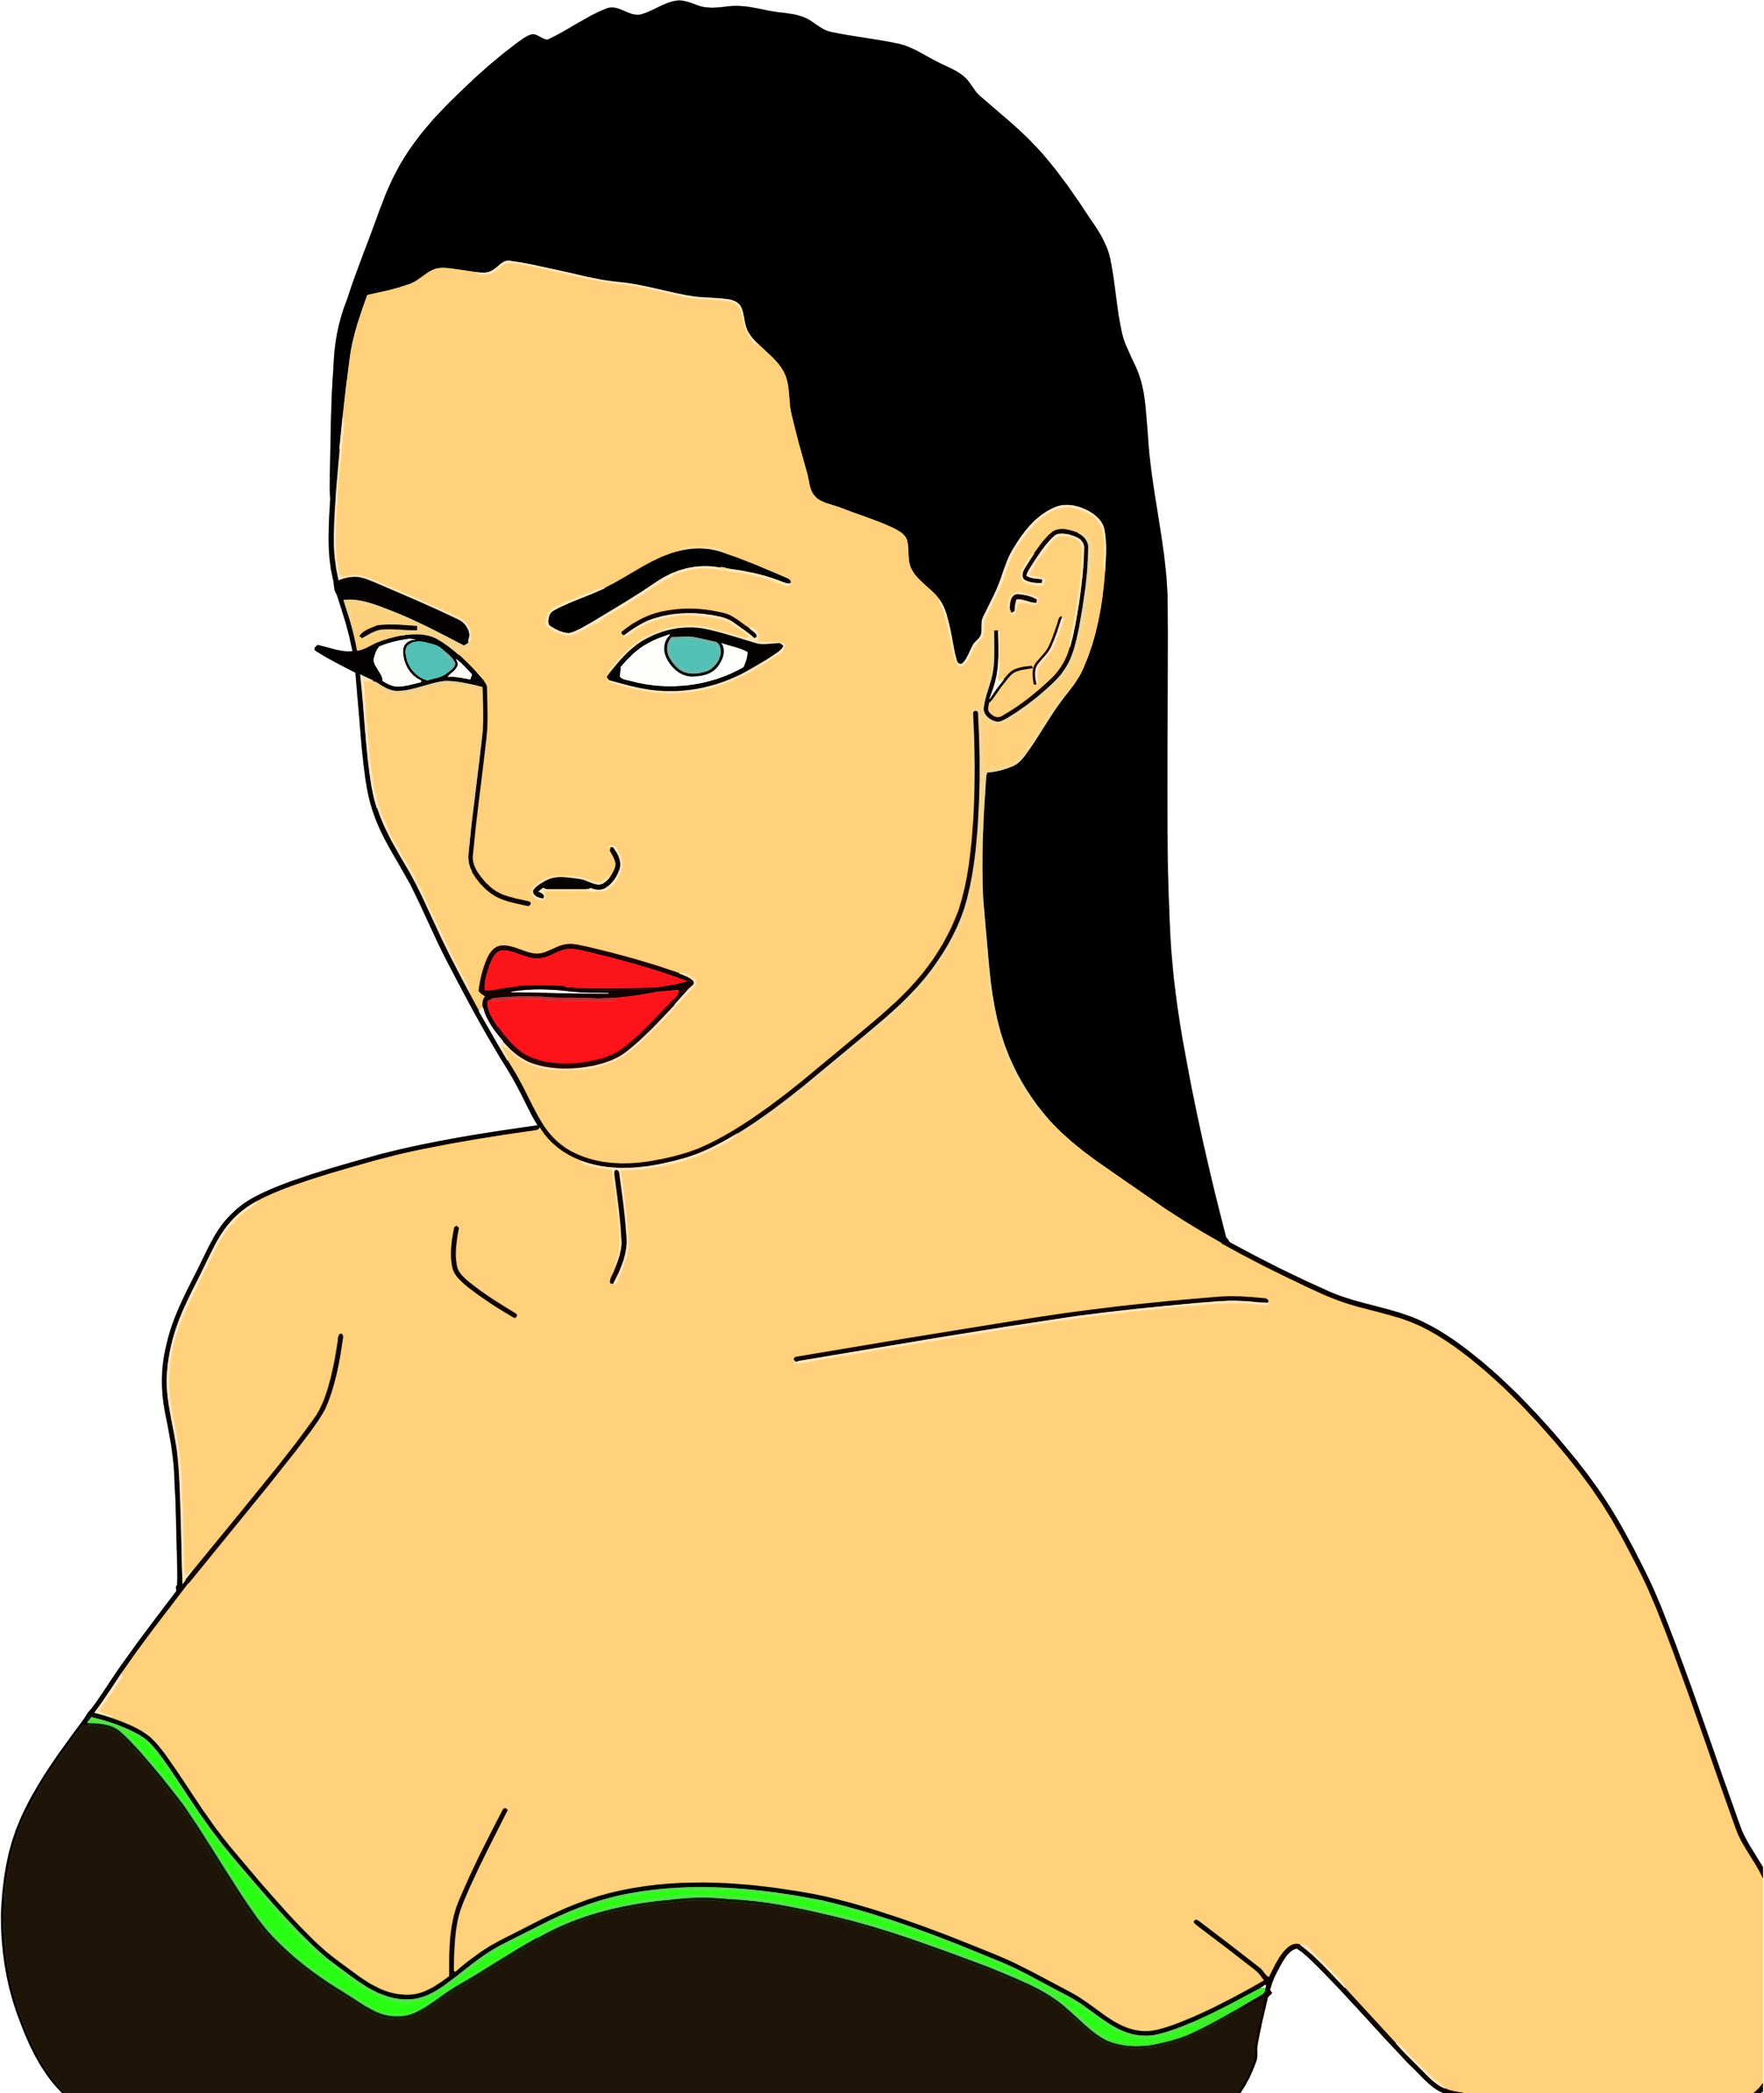 Angelina jolie big image. Photo clipart portrait